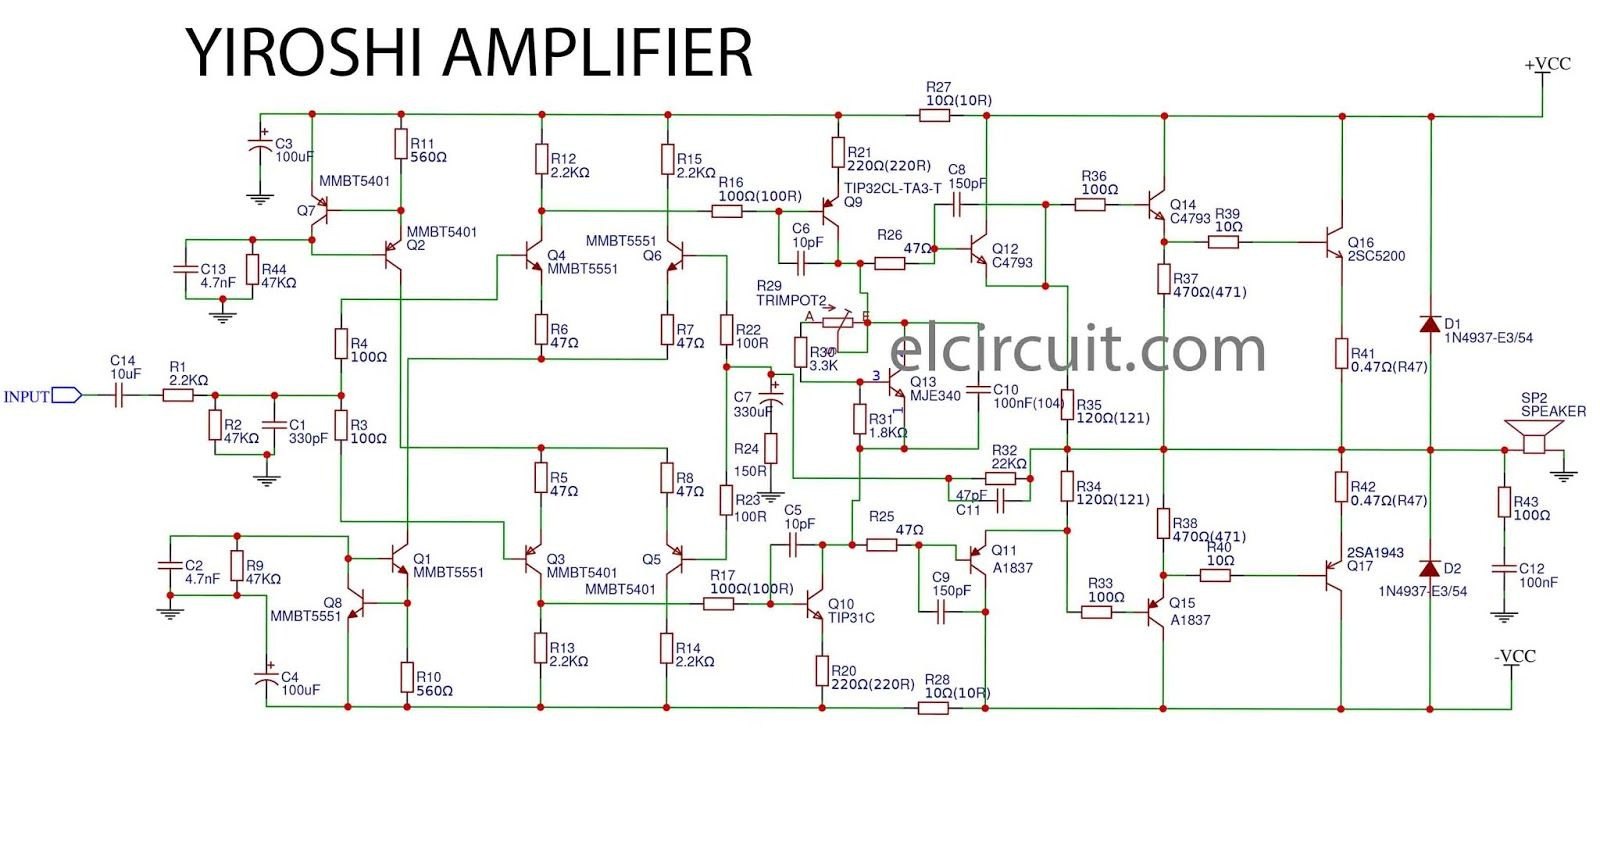 Yiroshi Power Amplifier Smd In 2018 Electronics Diy Circuit 2000w Amp Ocl Using Sanken Electronic